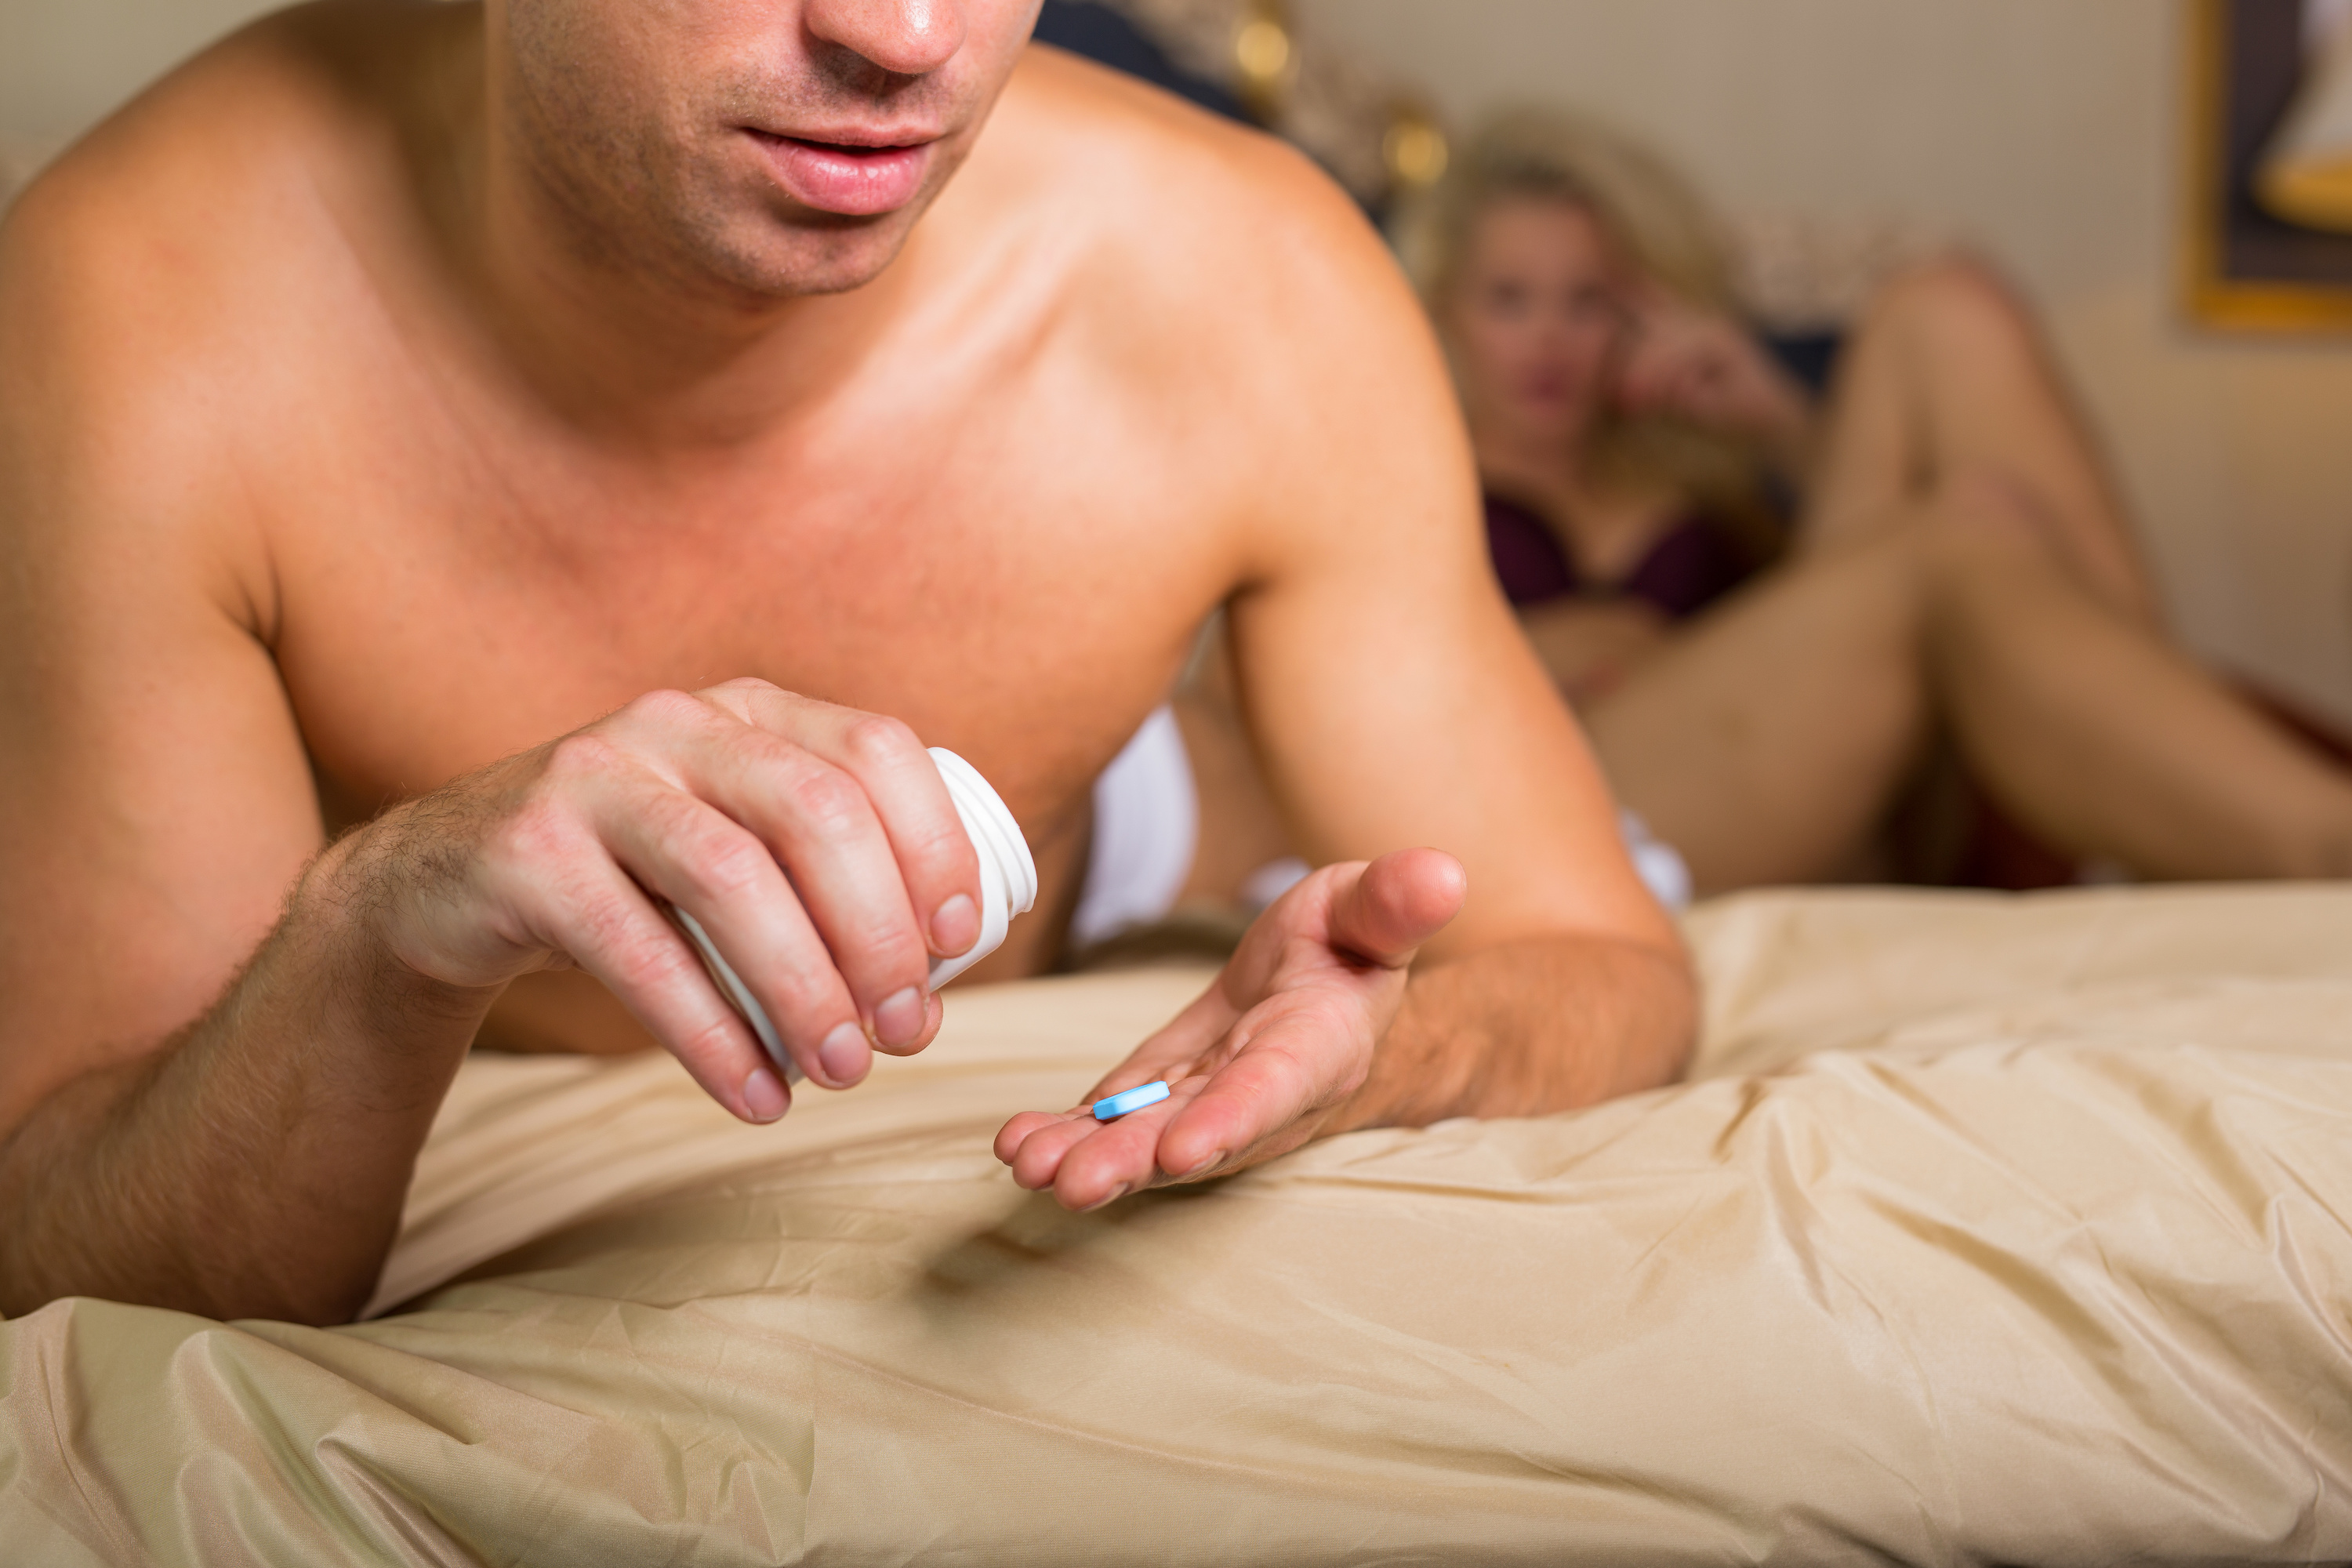 Man taking ED medication viagra or cialis